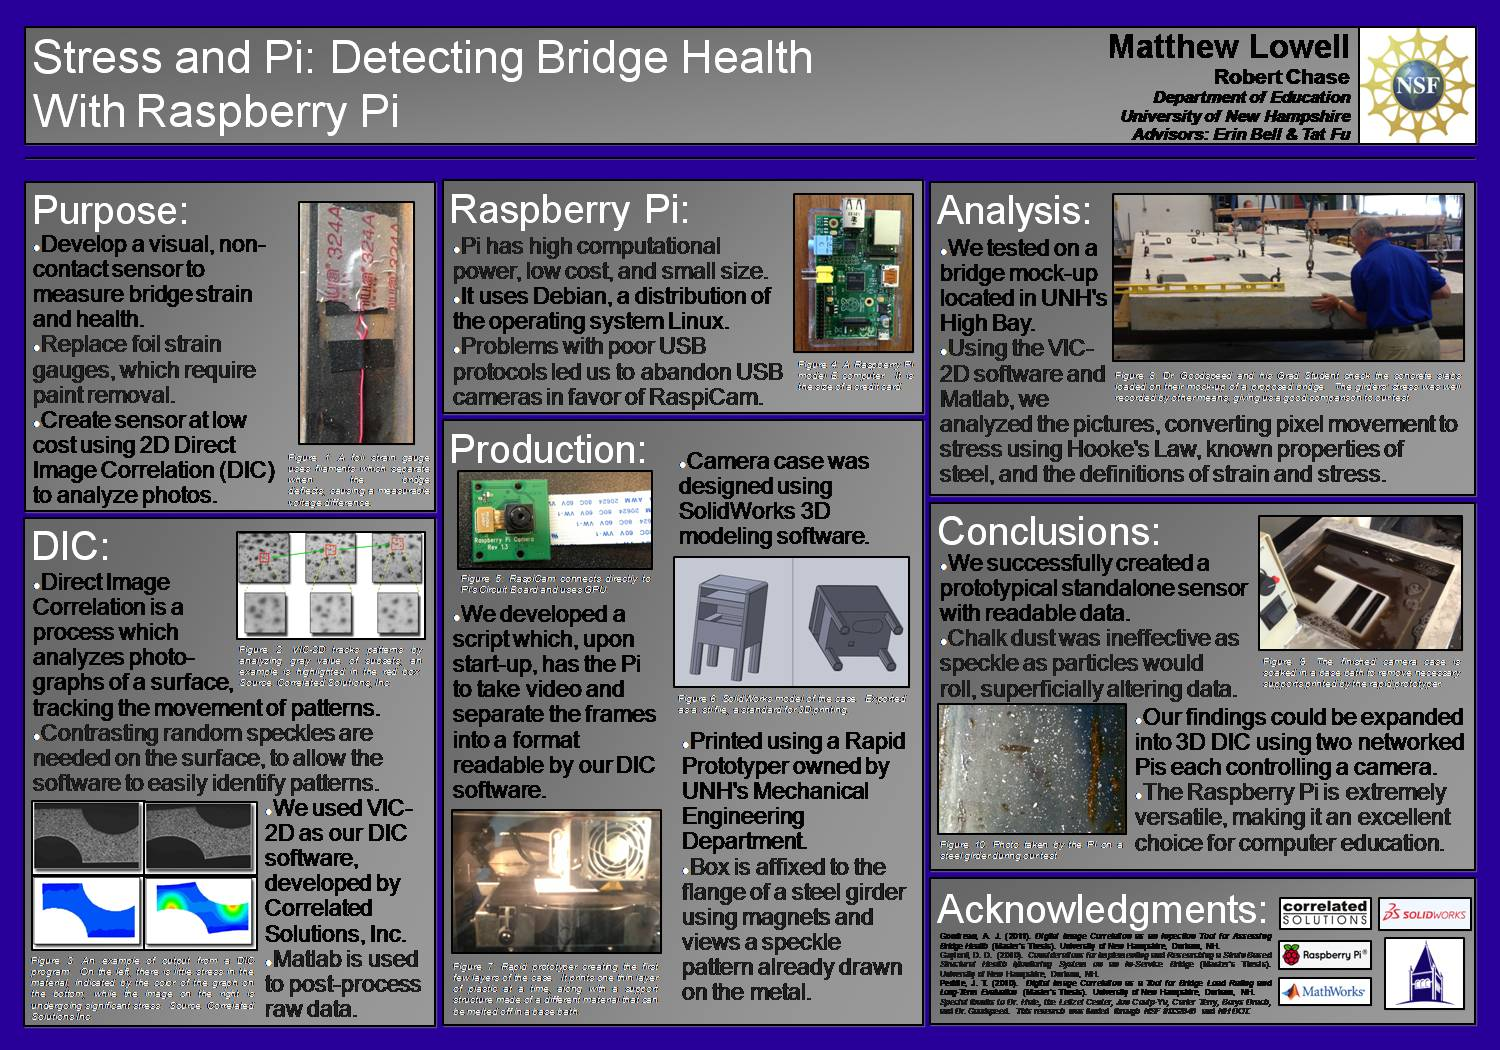 Stress And Pi: Detecting Bridge Health With Raspberry Pi by srhale